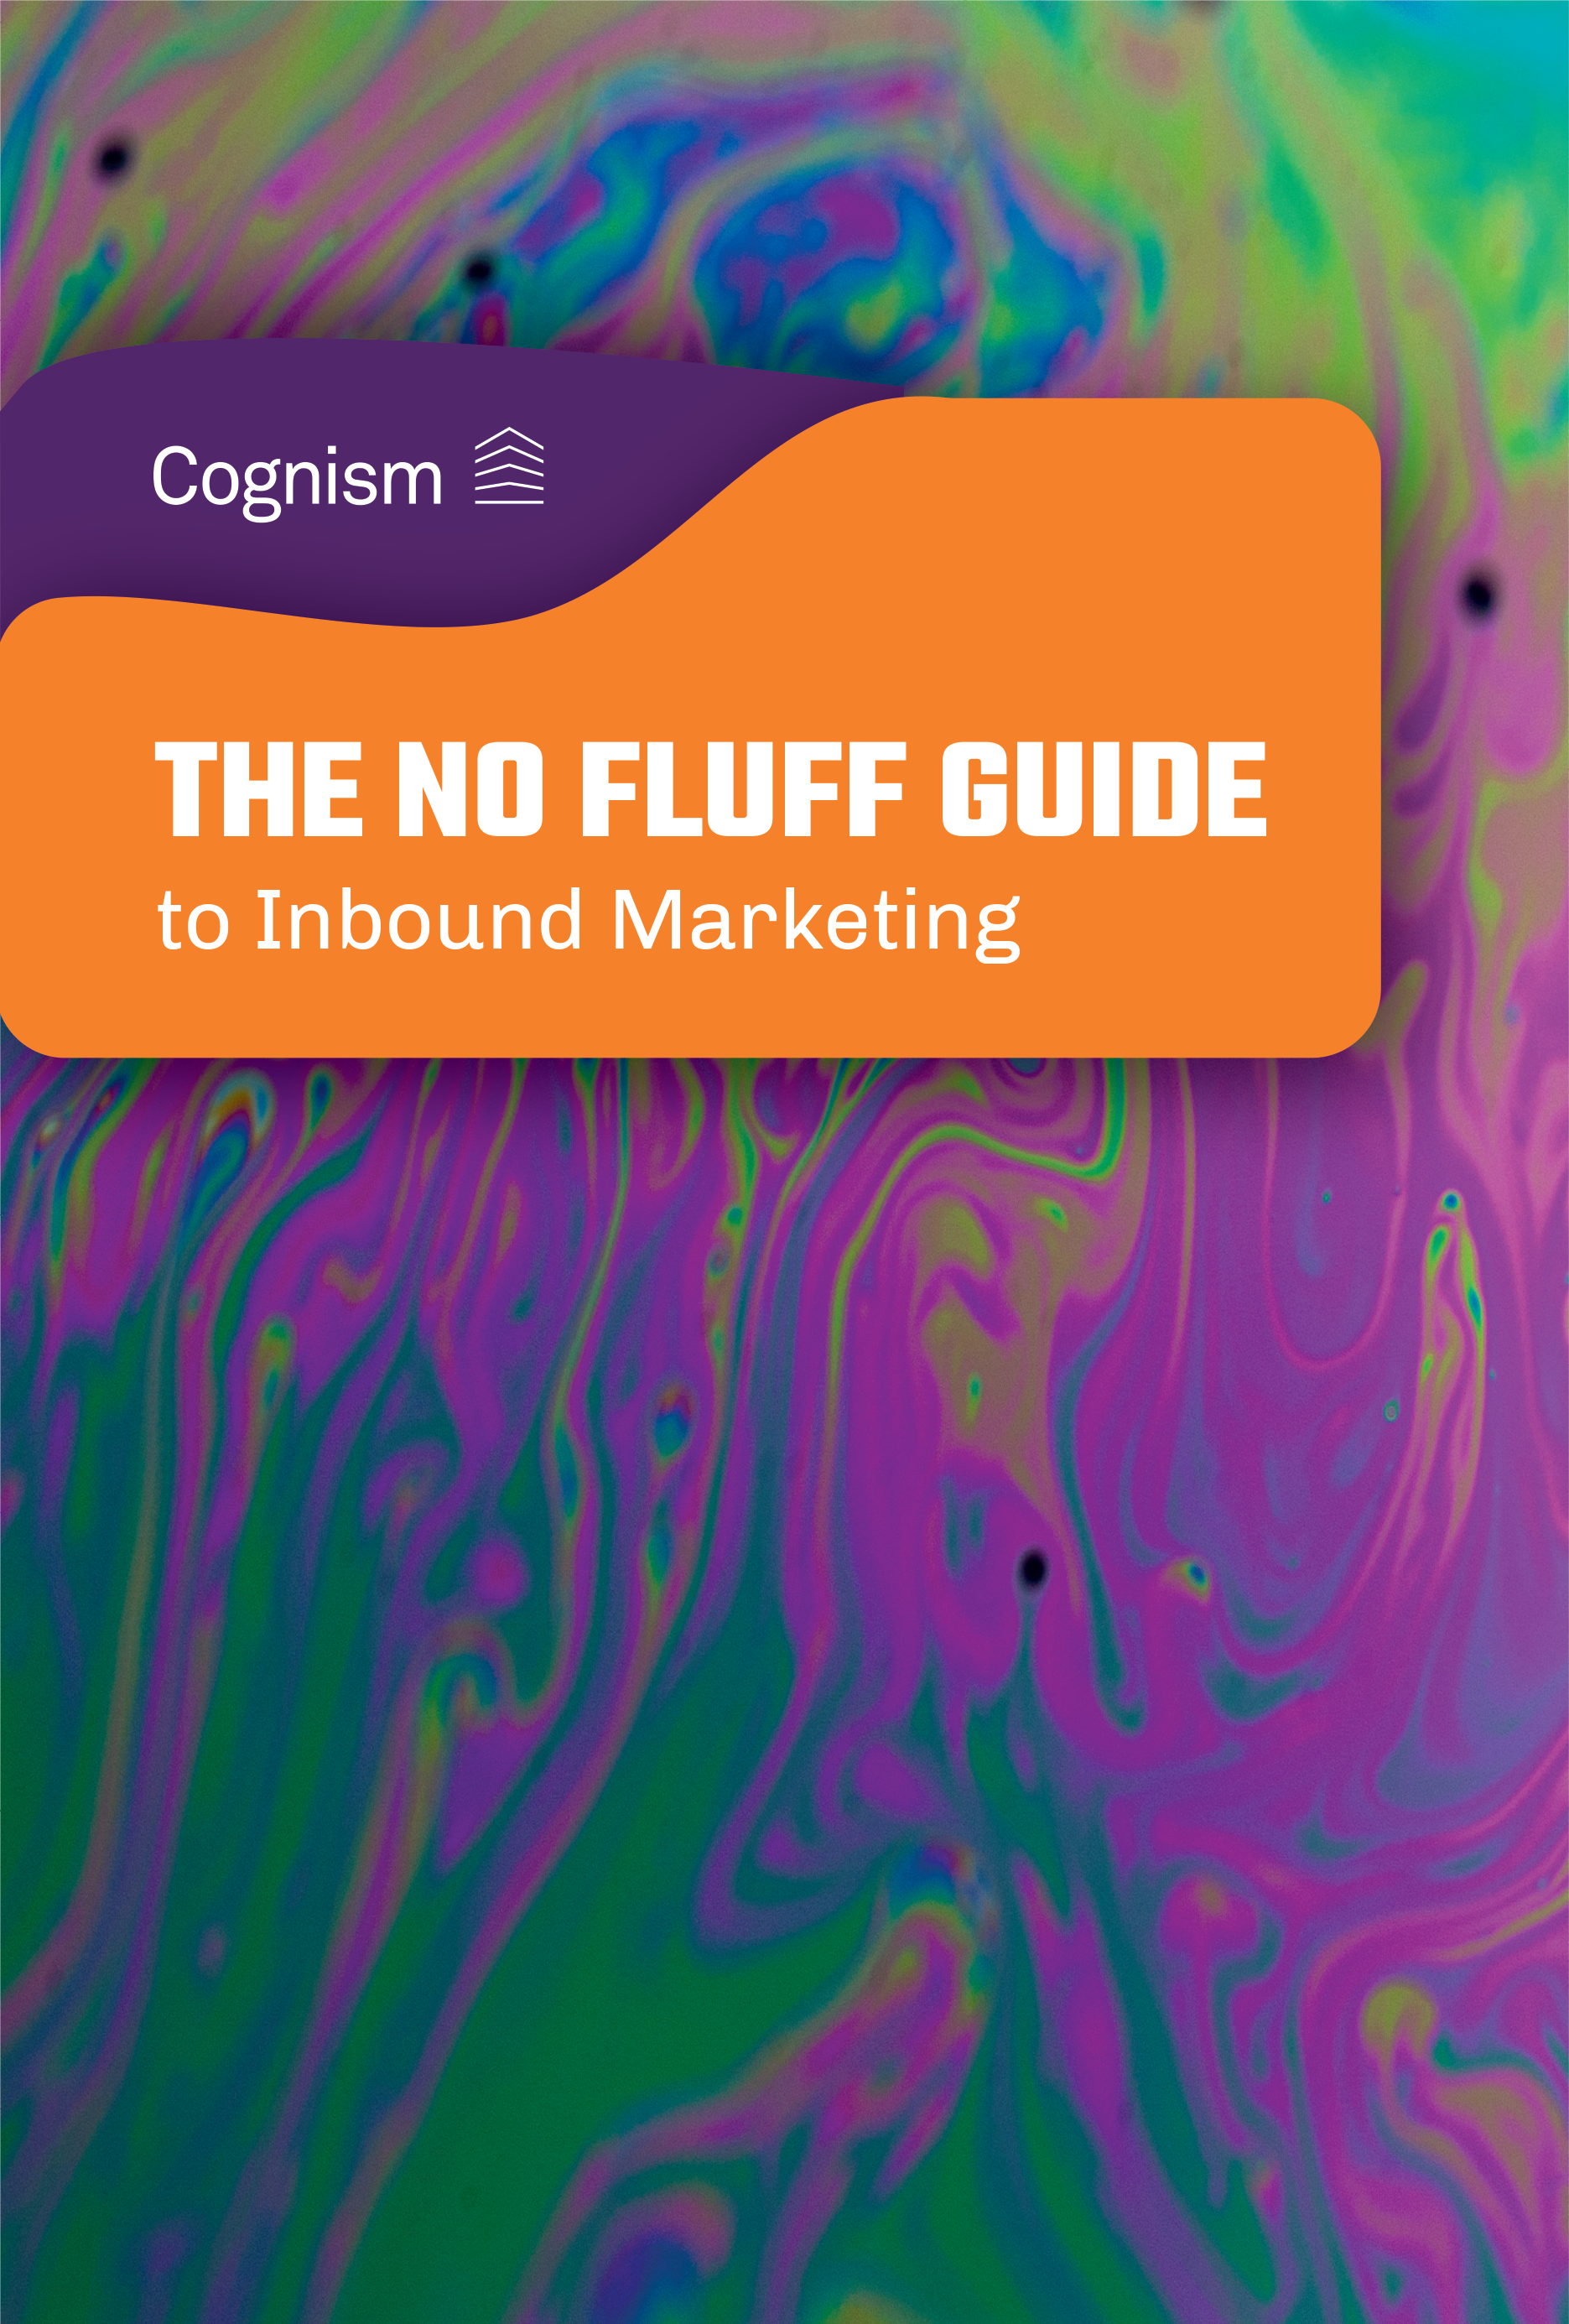 The No Fluff Guide to Inbound Marketing-1-1